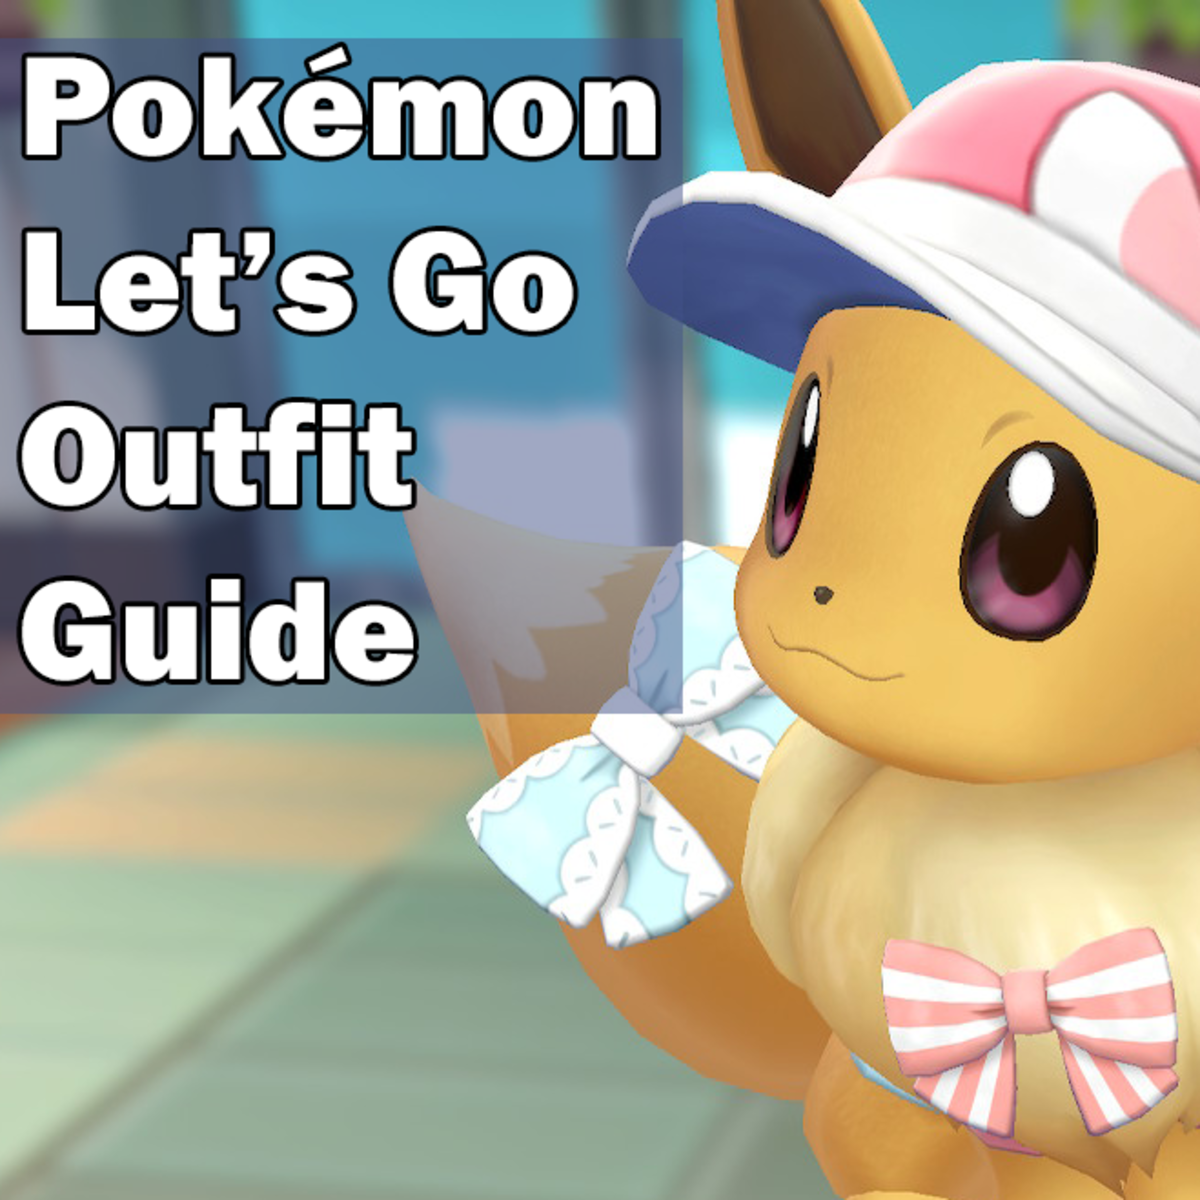 How to get all of the clothes in Pokemon Let's Go Pikachu and Eevee